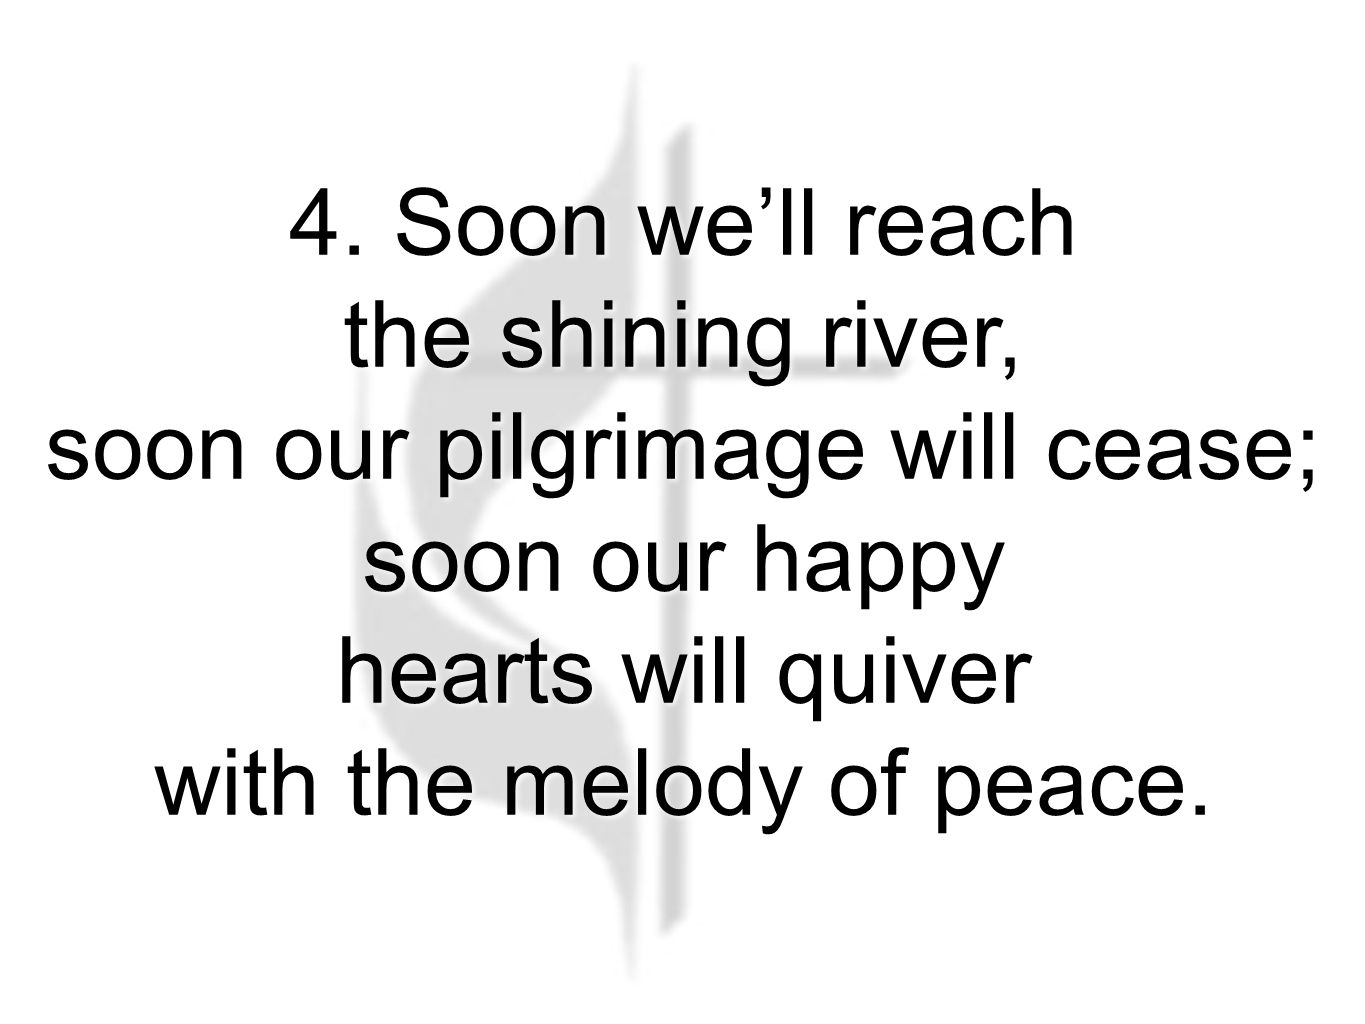 4. Soon we'll reach the shining river, soon our pilgrimage will cease; soon our happy hearts will quiver with the melody of peace. Shall We Gather at